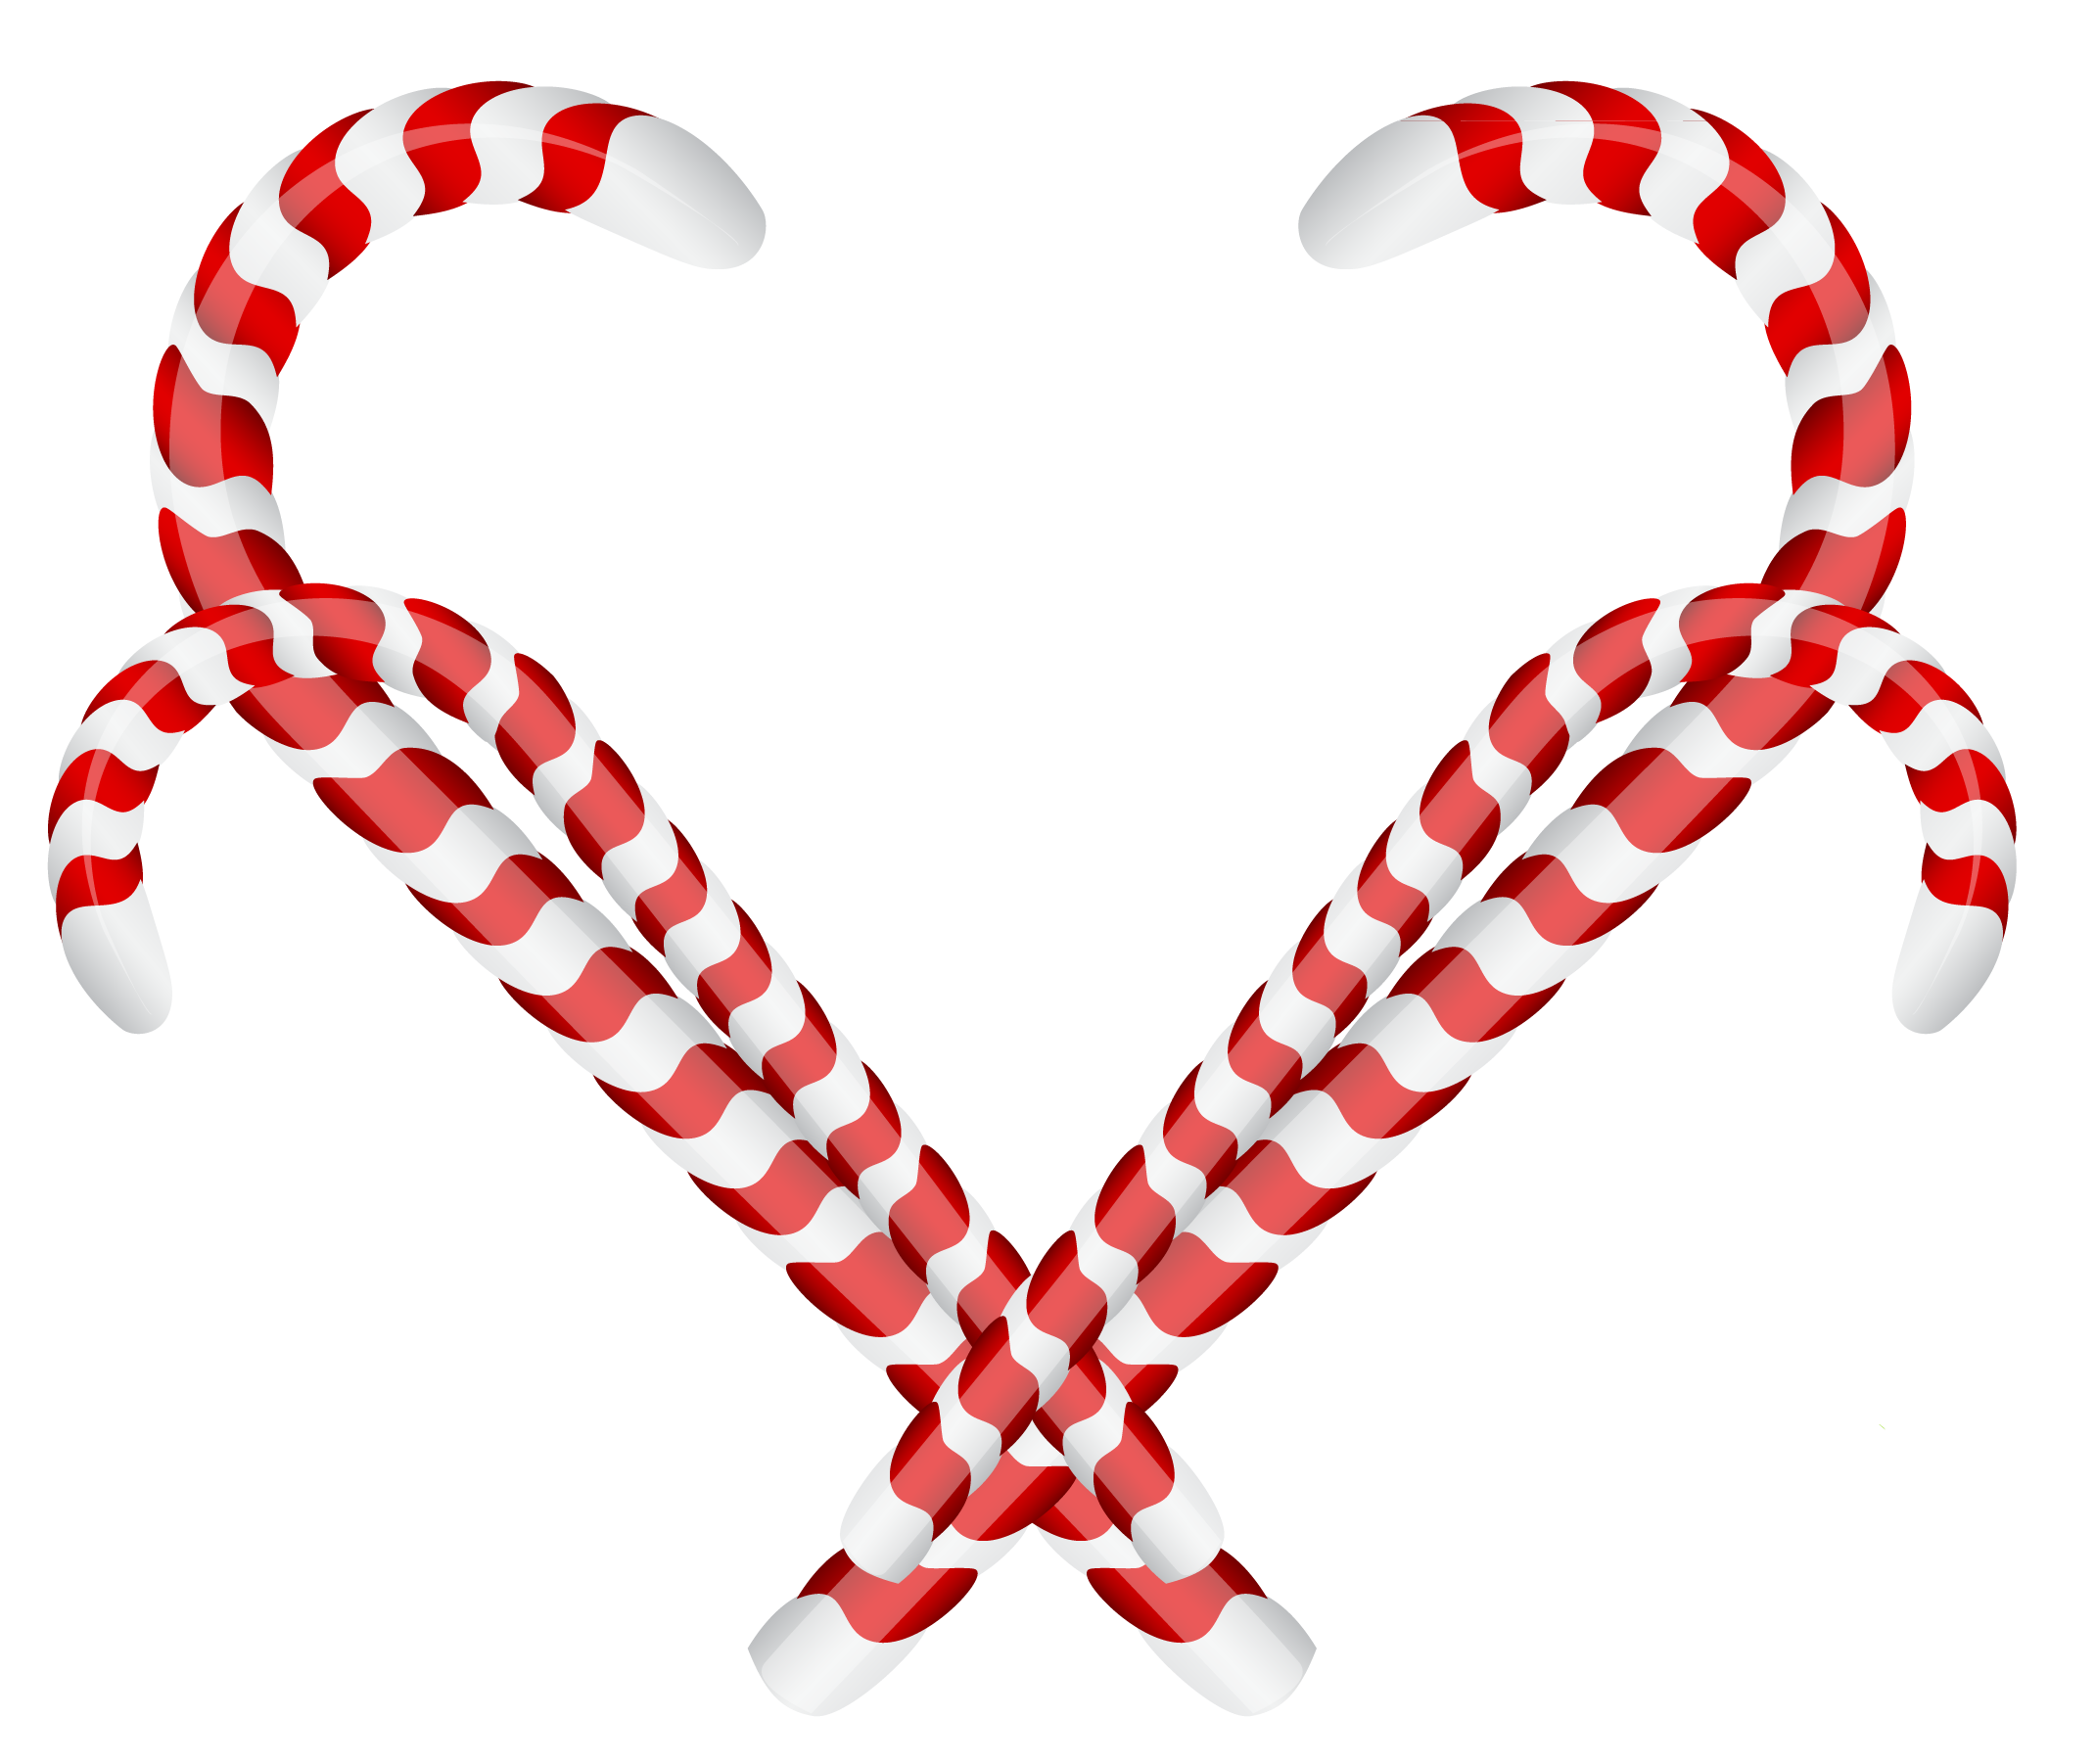 Clipart christmas heart. Candy cane ornament png